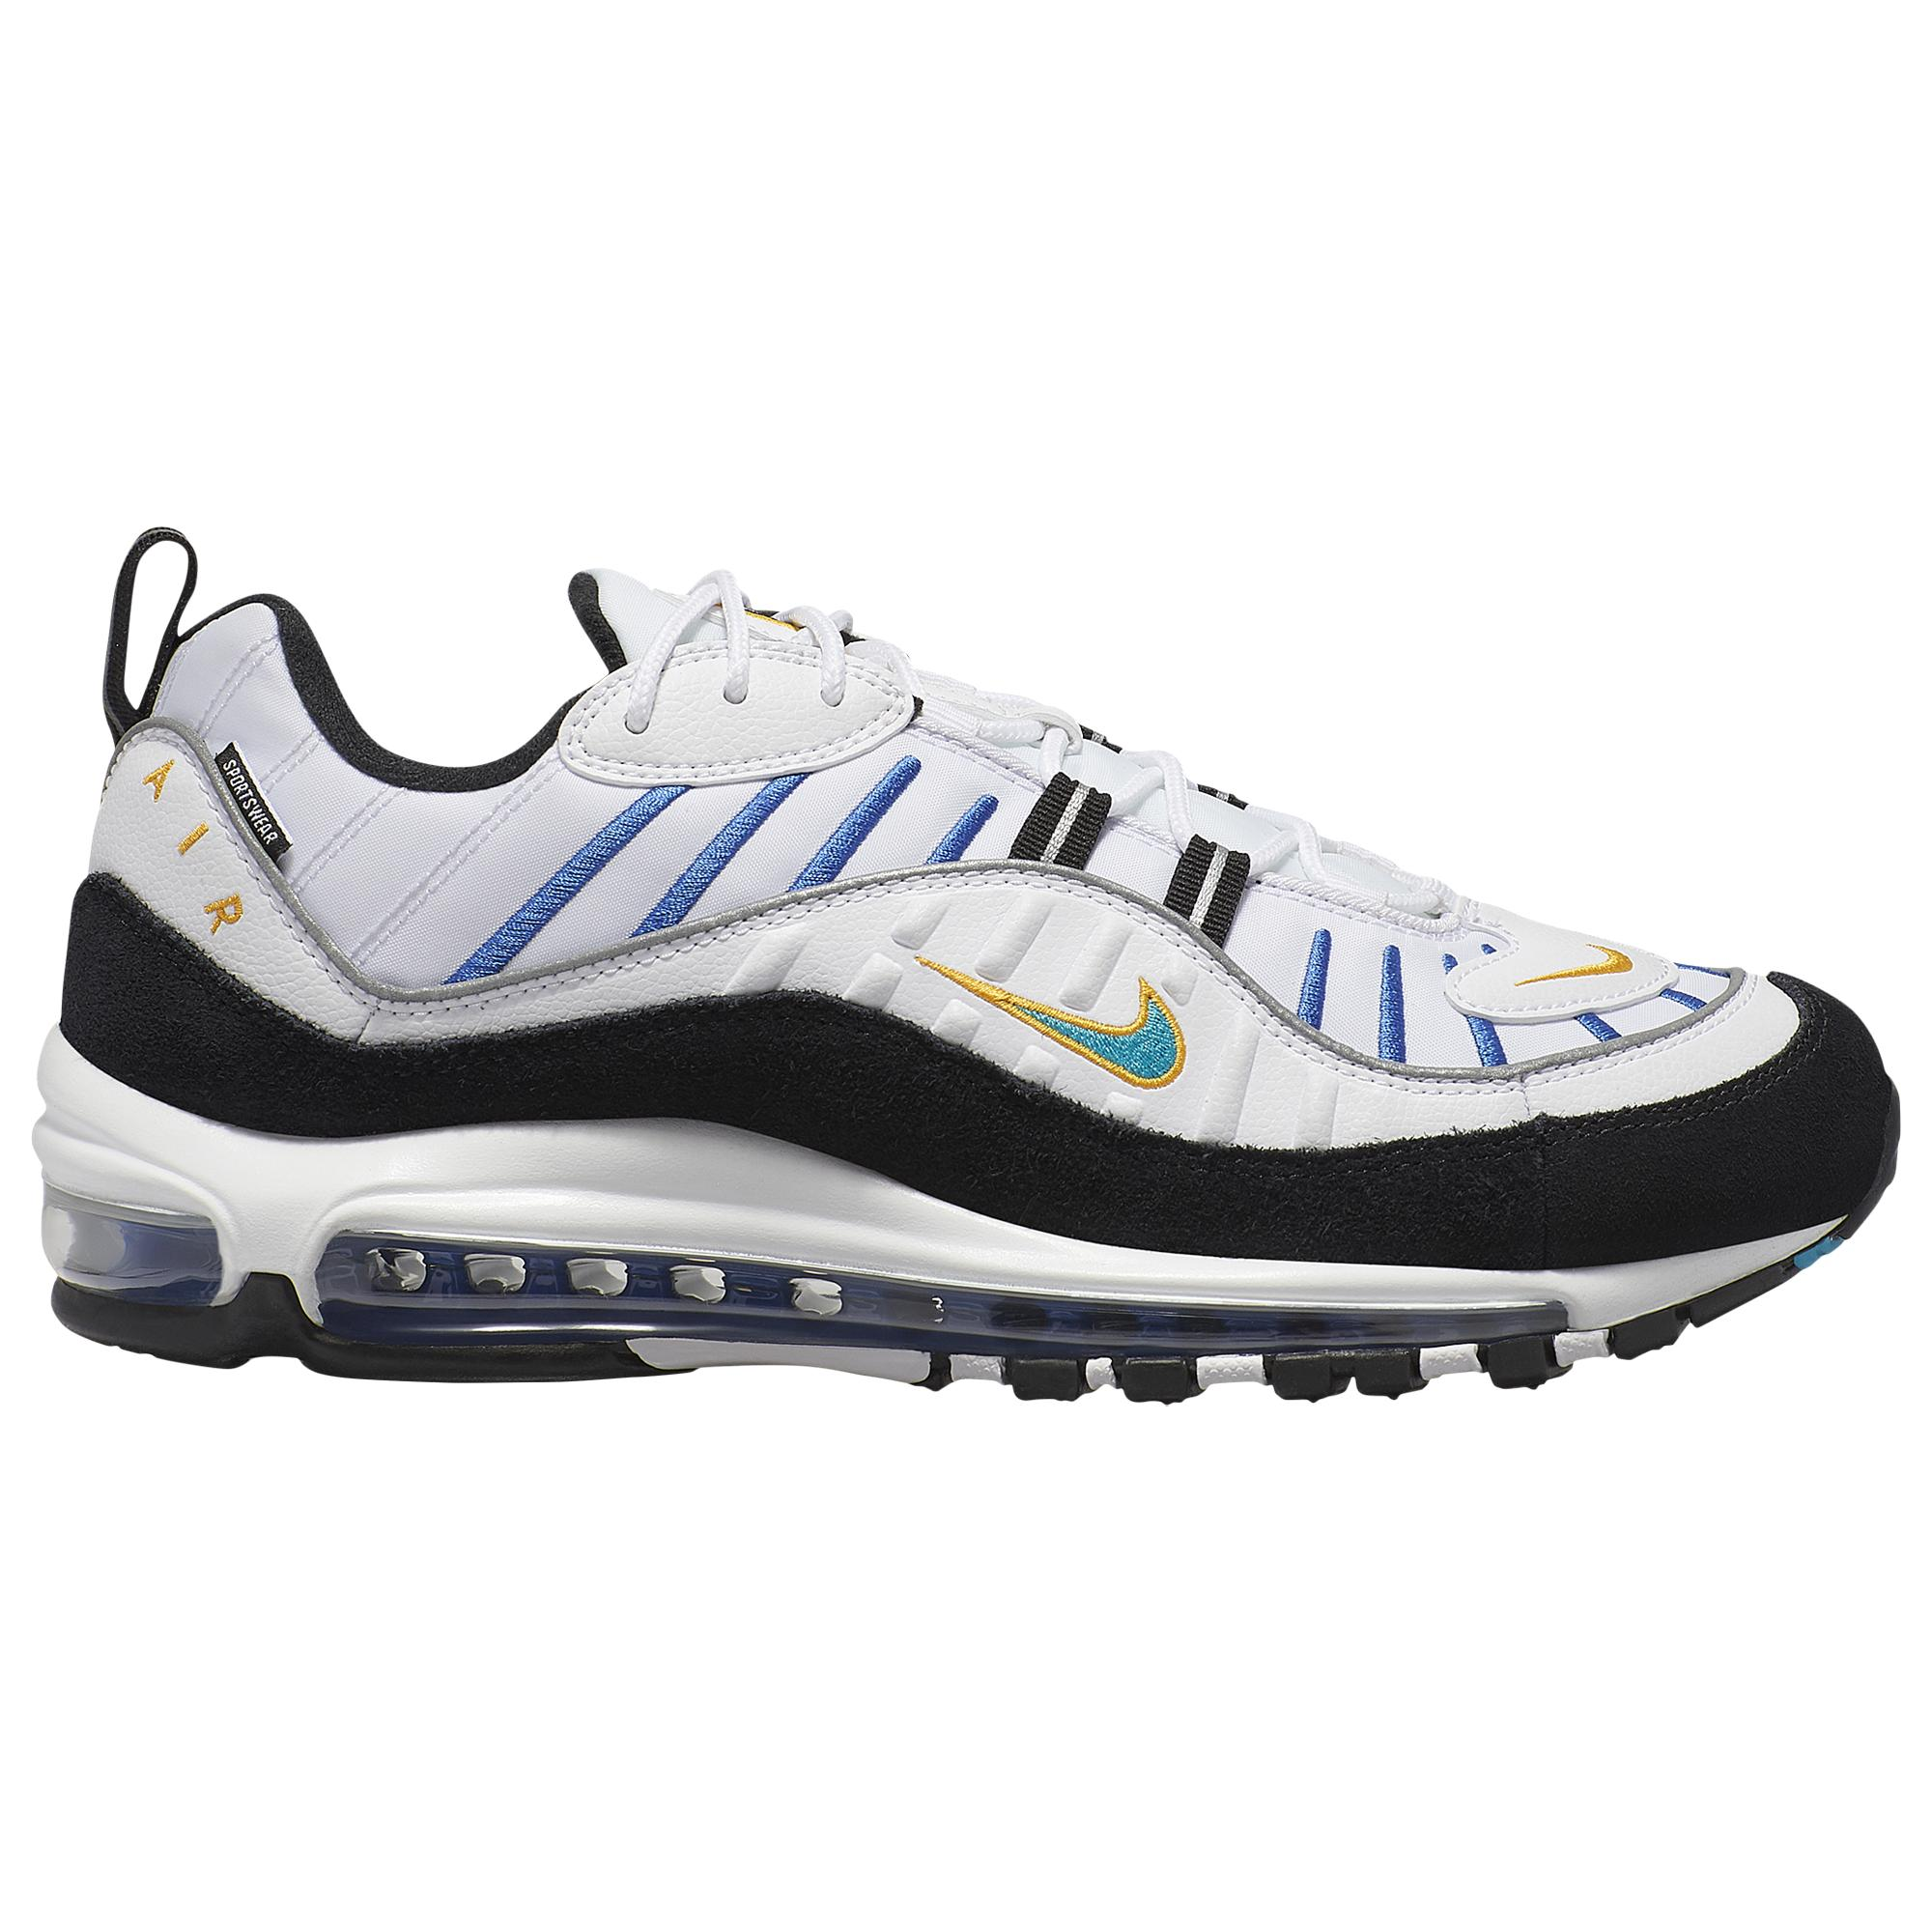 Nike Leather Air Max 98 Low-top sneakers for Men - Lyst